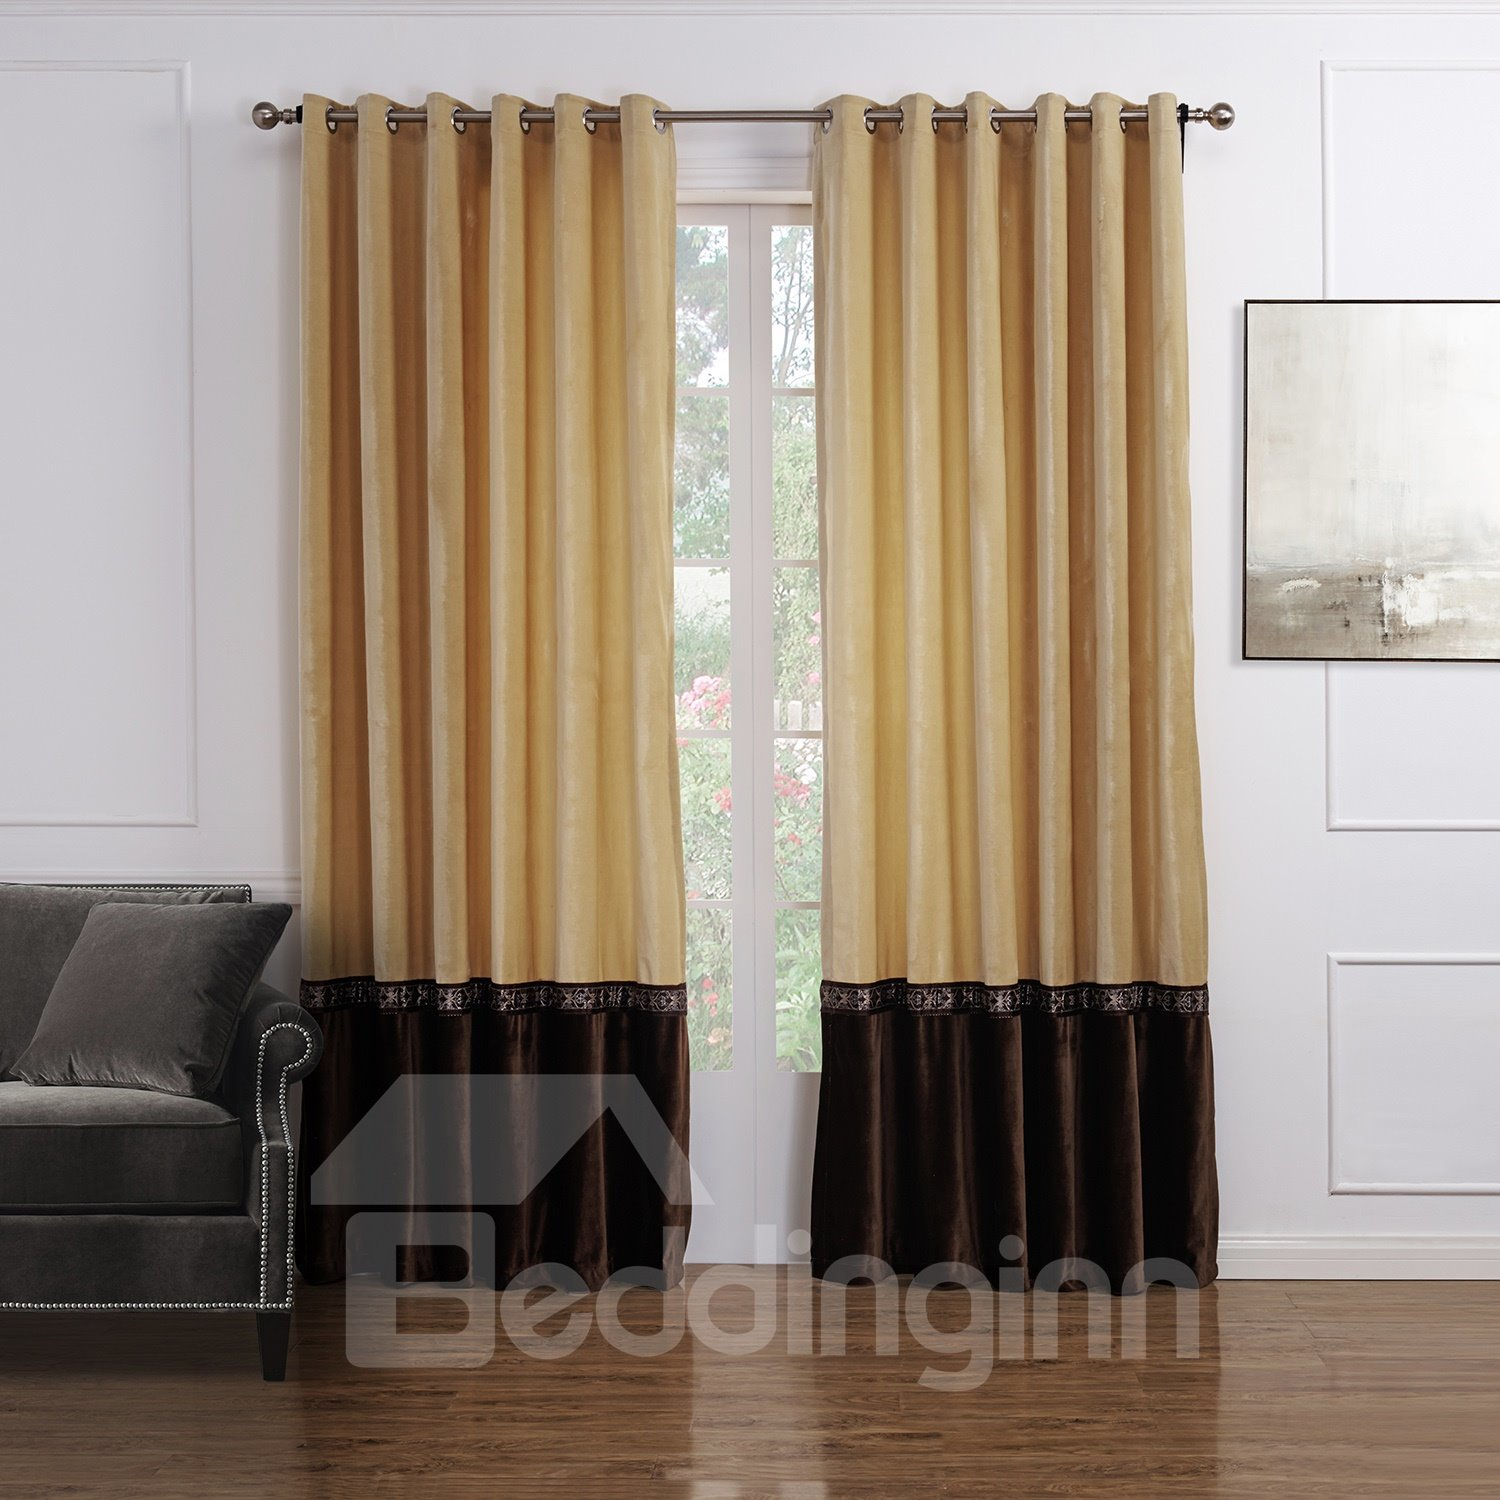 Wonderful High Quality Flannelette Double Colors Custom Curtain